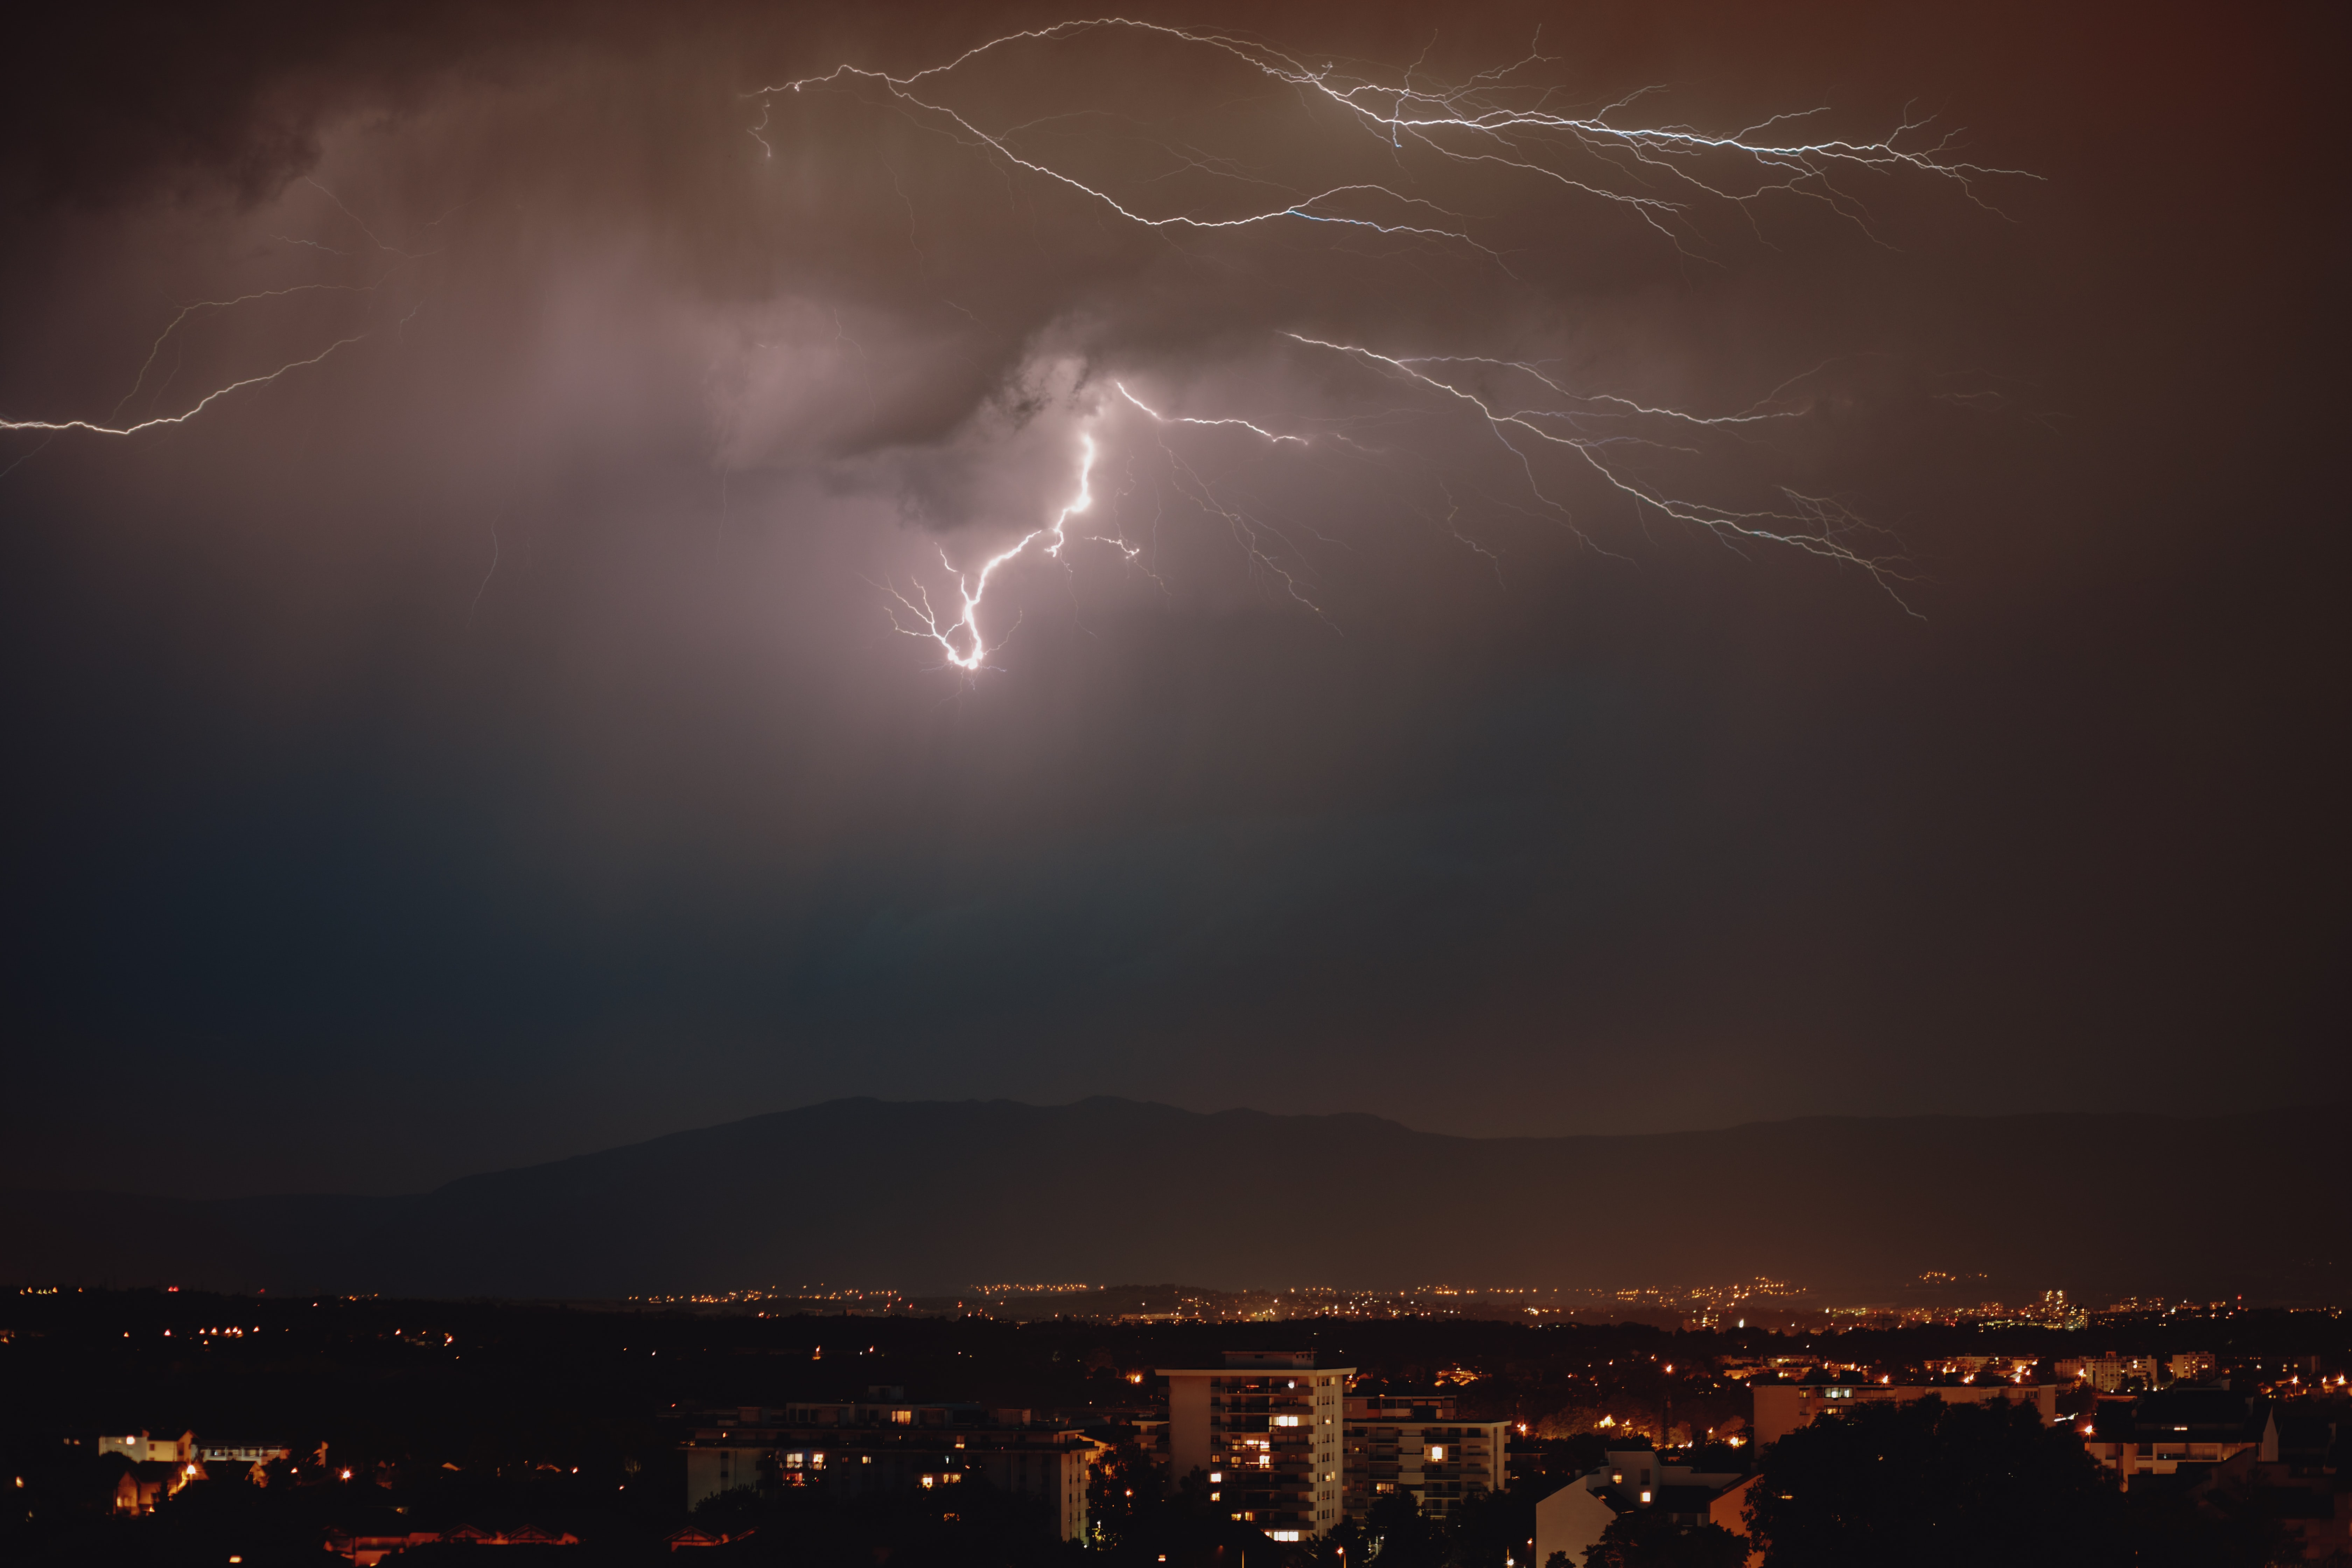 lightning strike over the city during night time